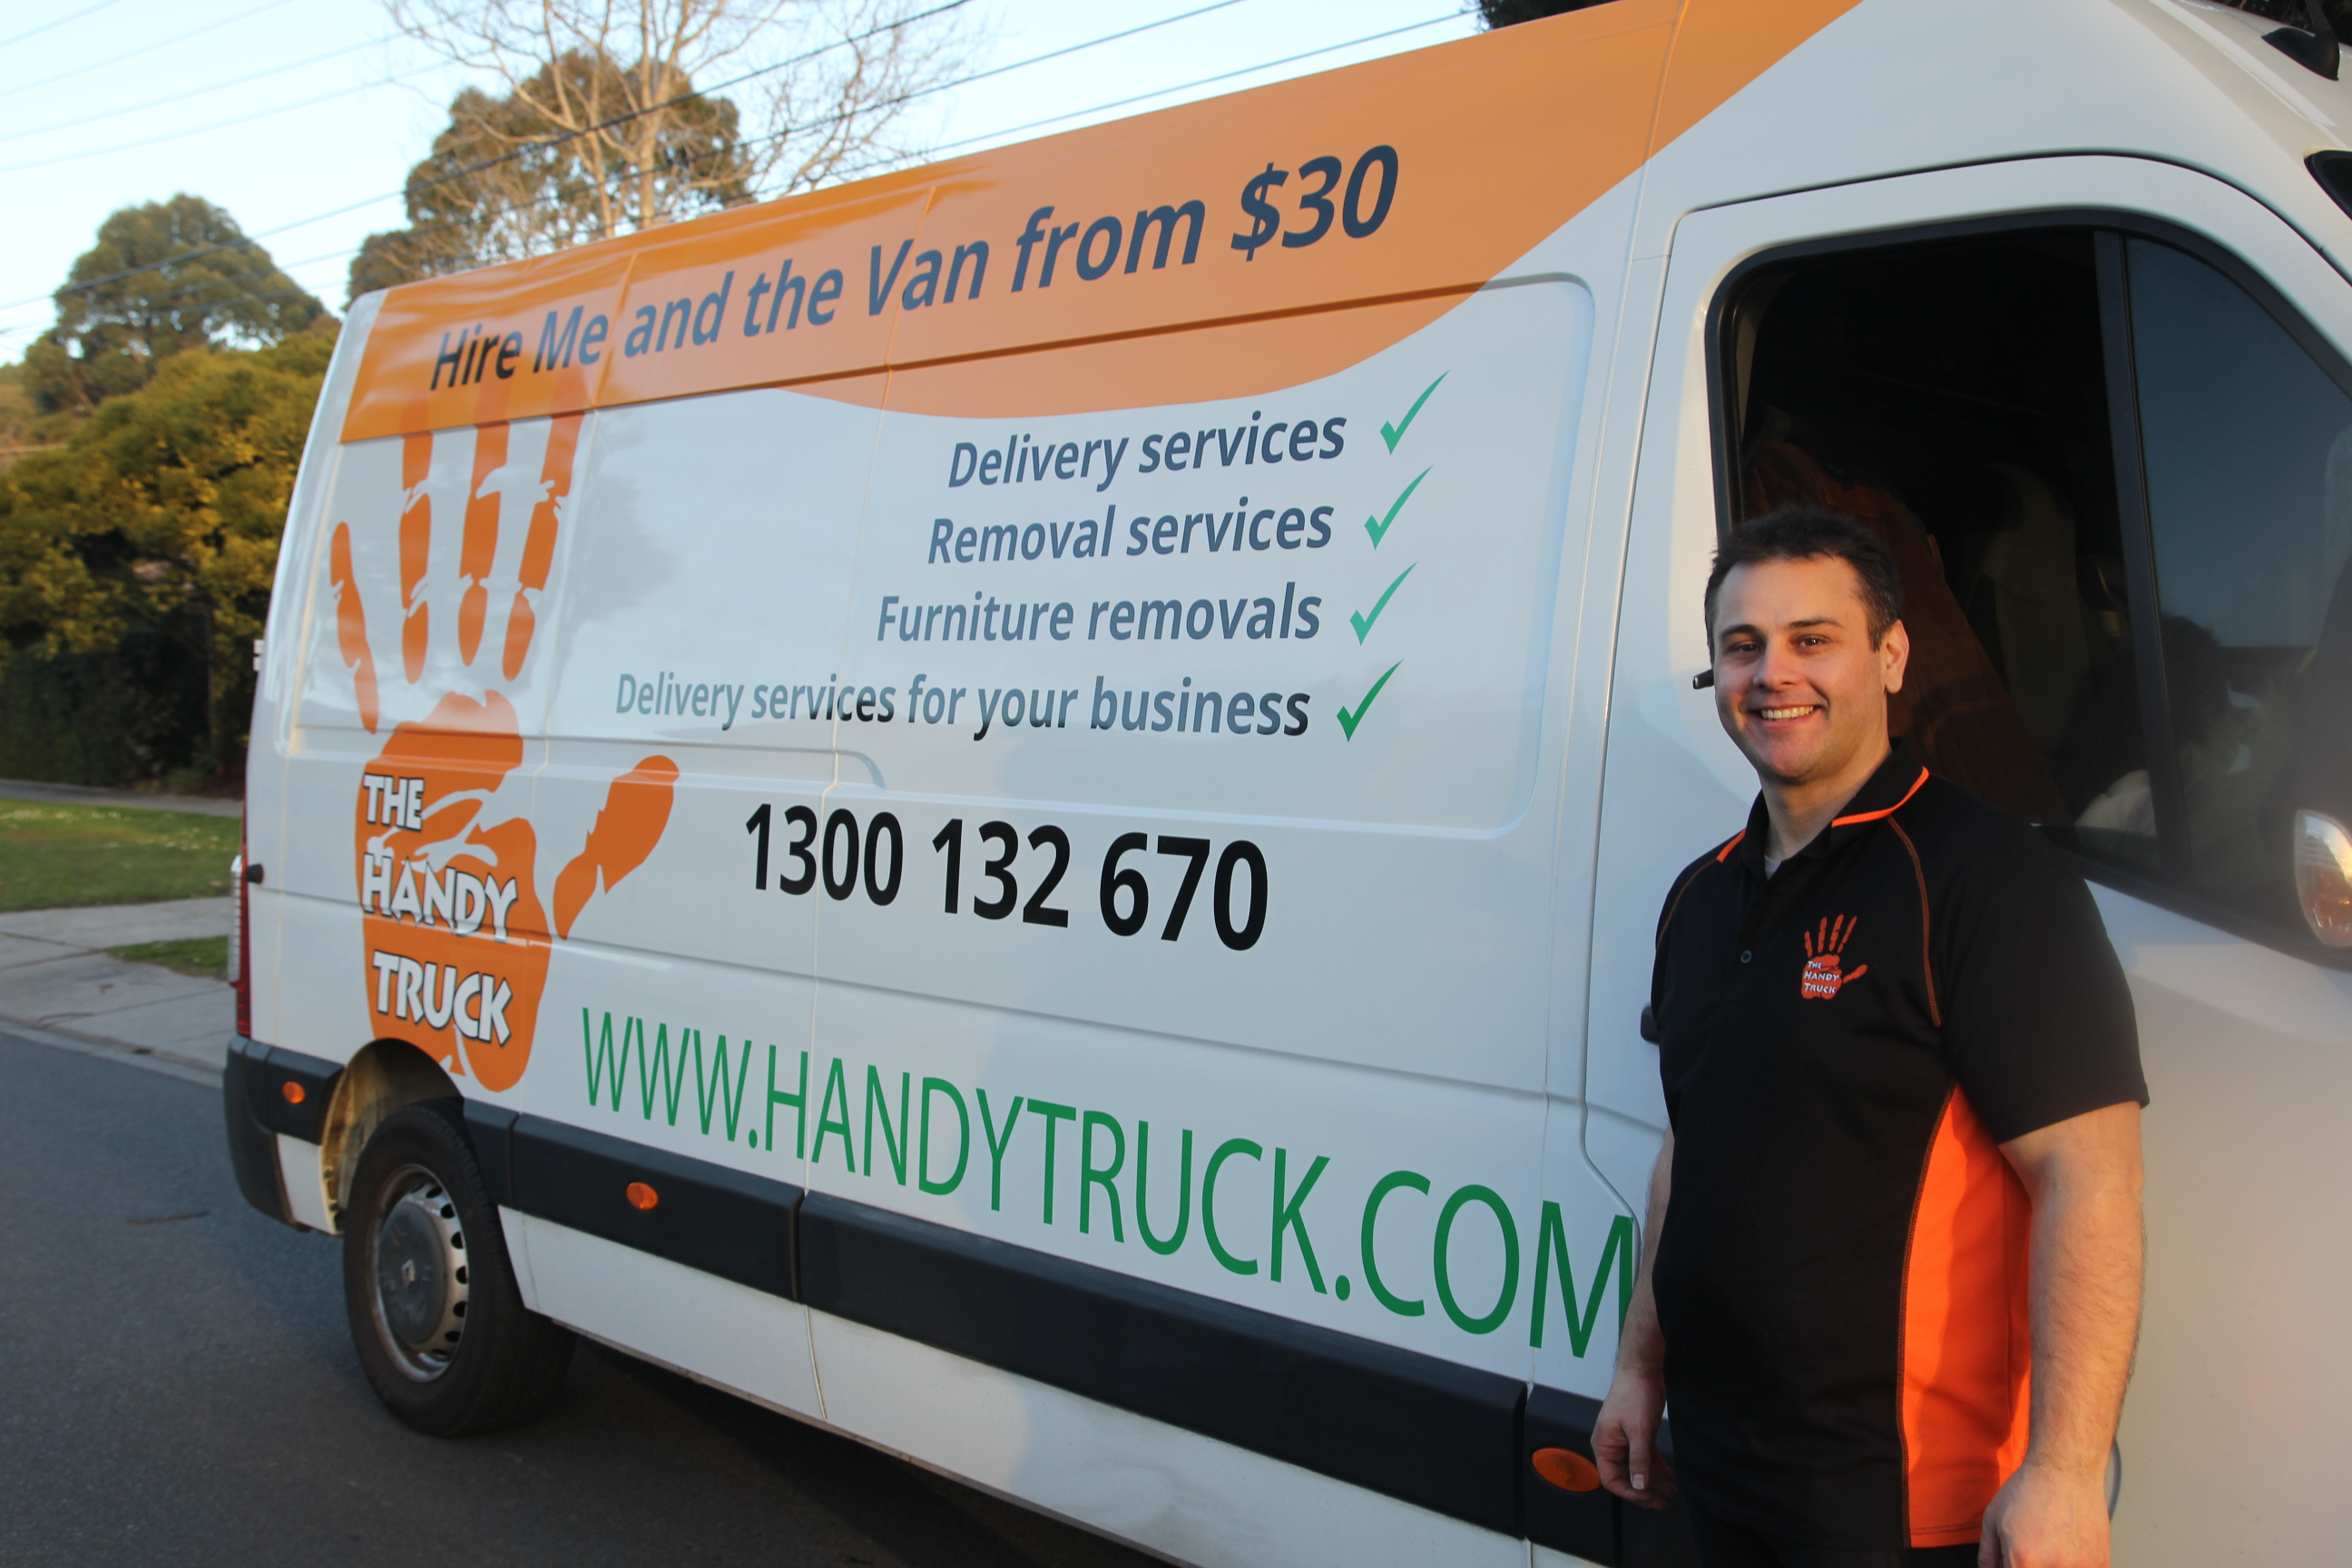 Your delivery and removalist service in Ringwood